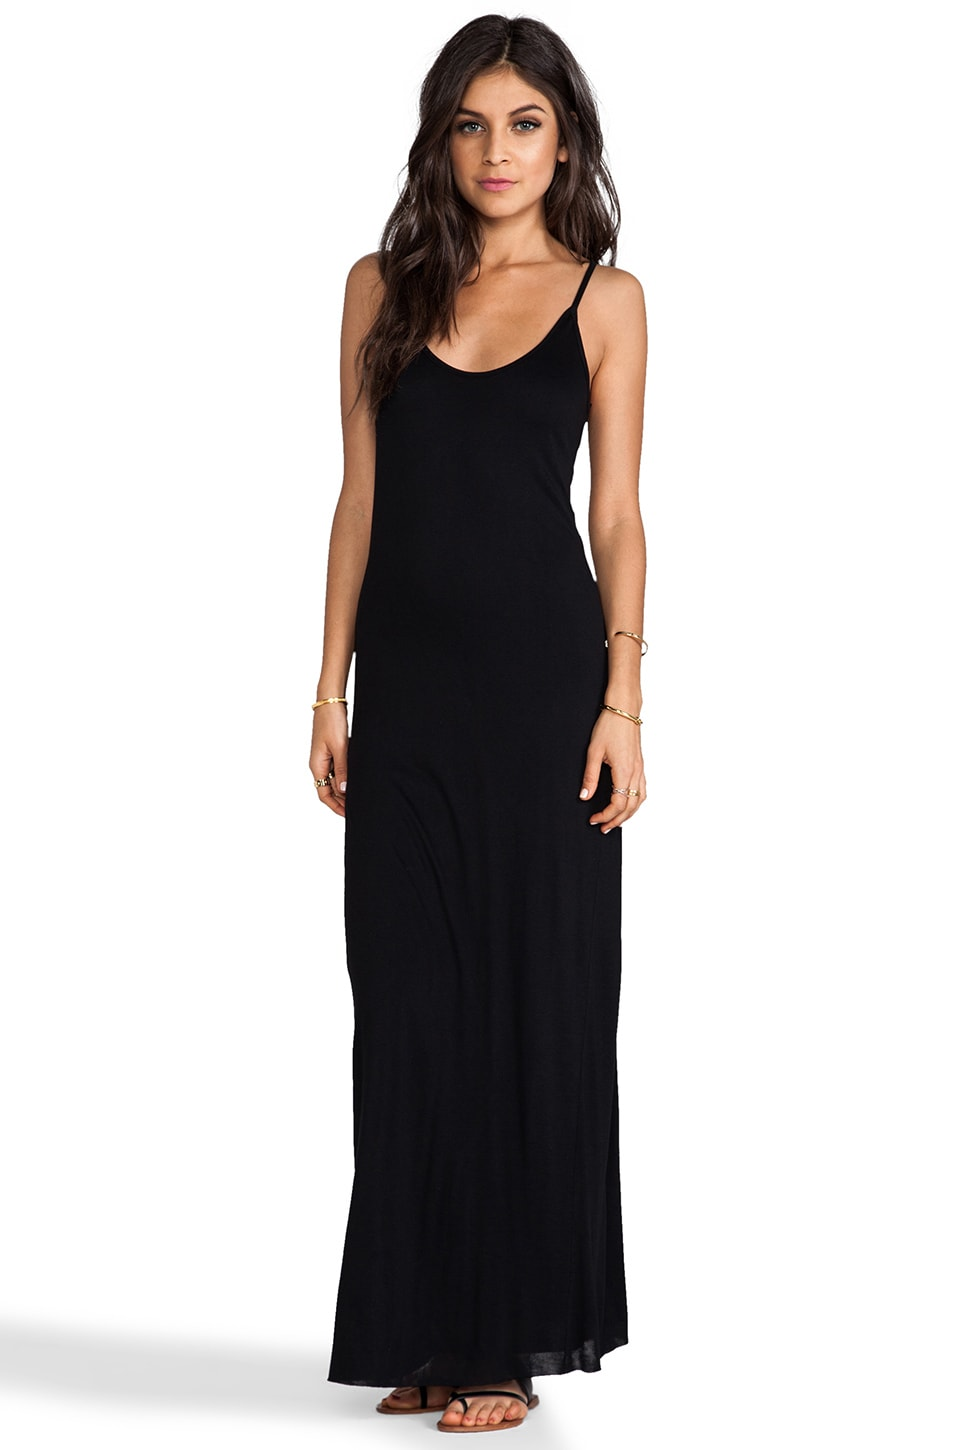 Velvet by Graham & Spencer Vixen New Fine Slinky Tank Dress in Black